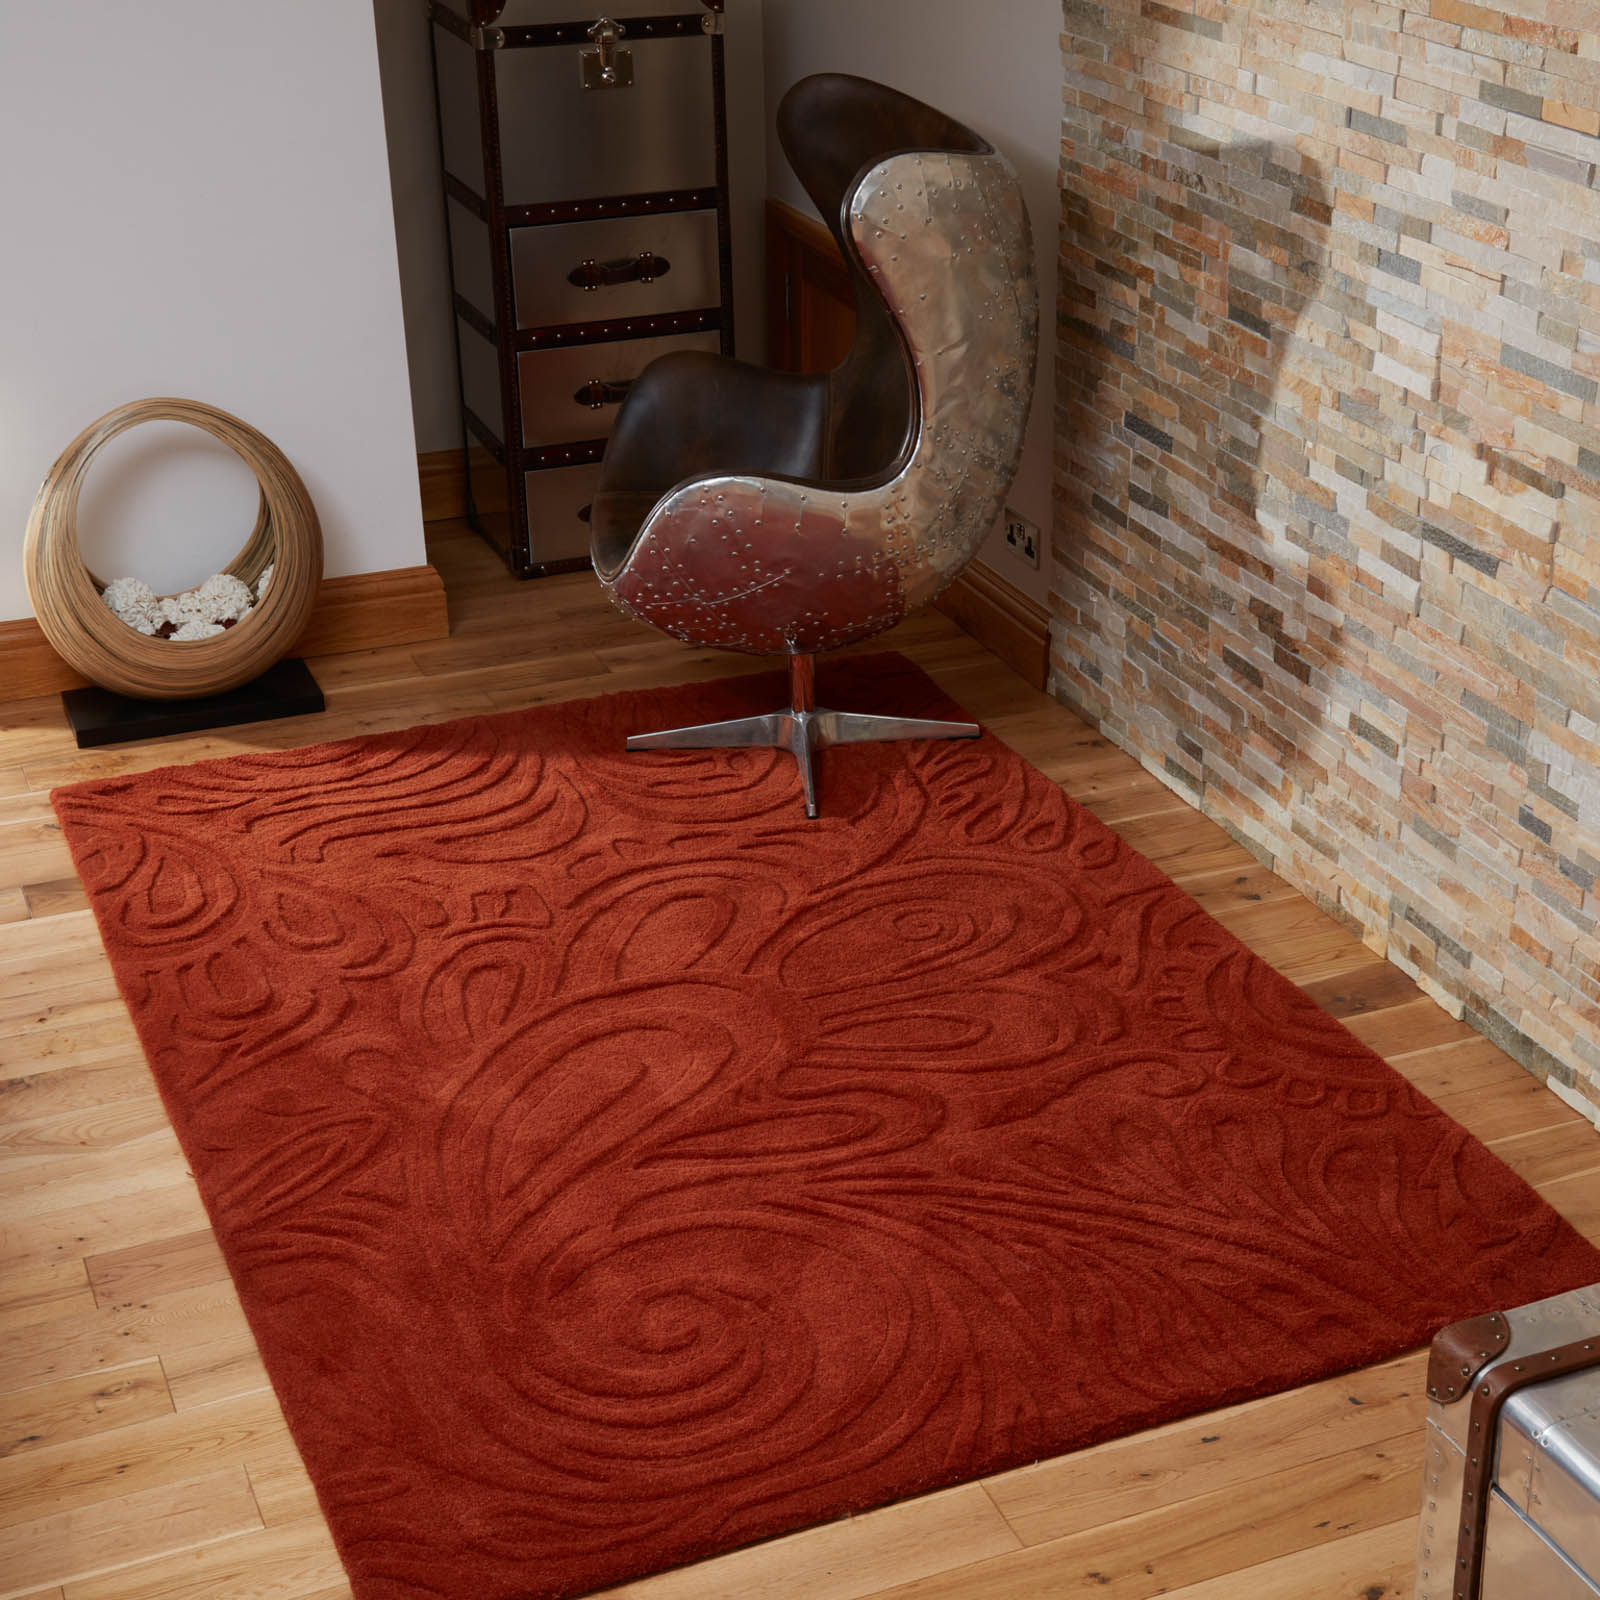 Relief Paisley Rugs